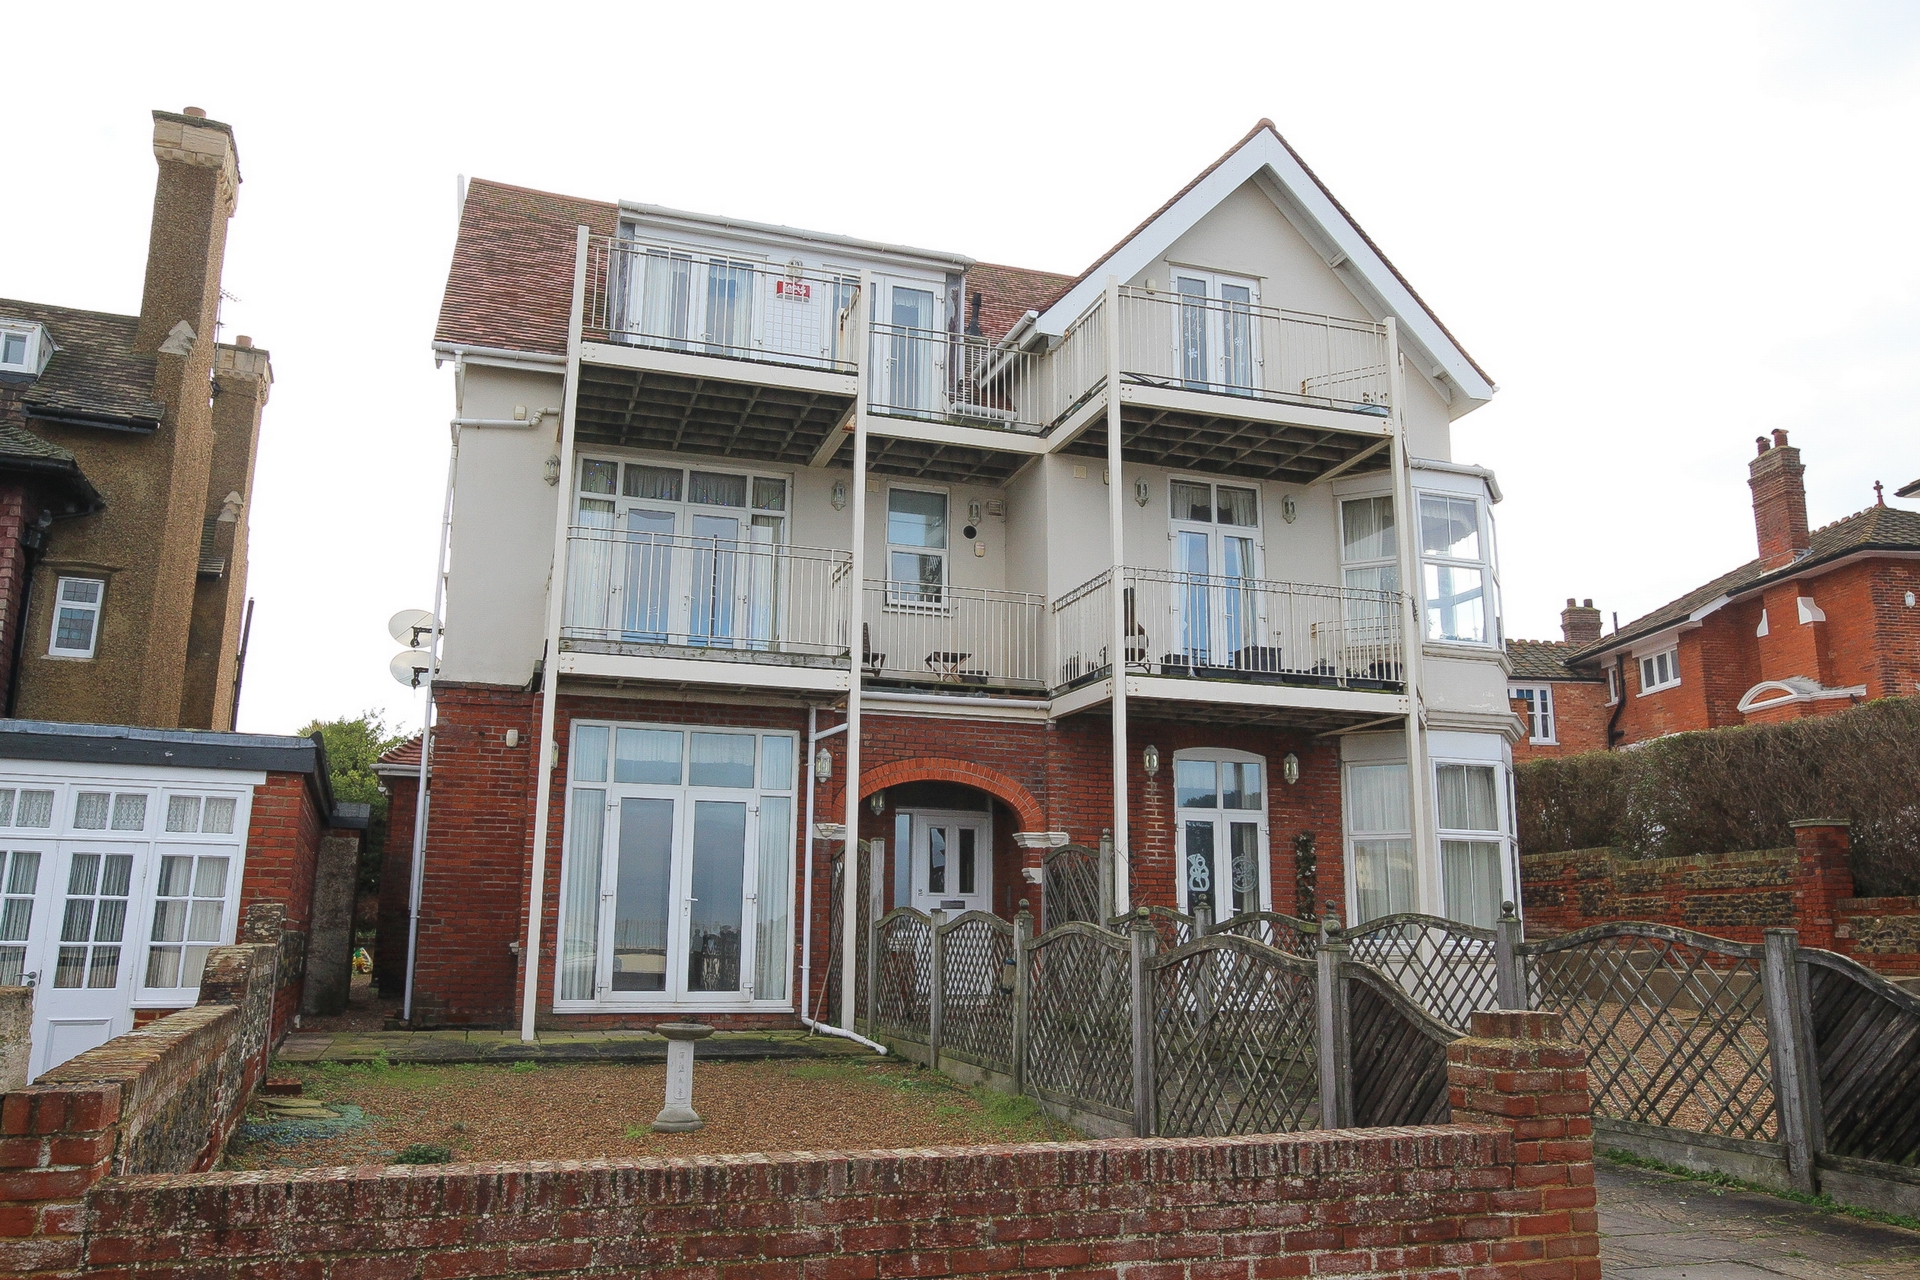 2 bed flat to rent in Sea Road, Westgate, CT8, CT8